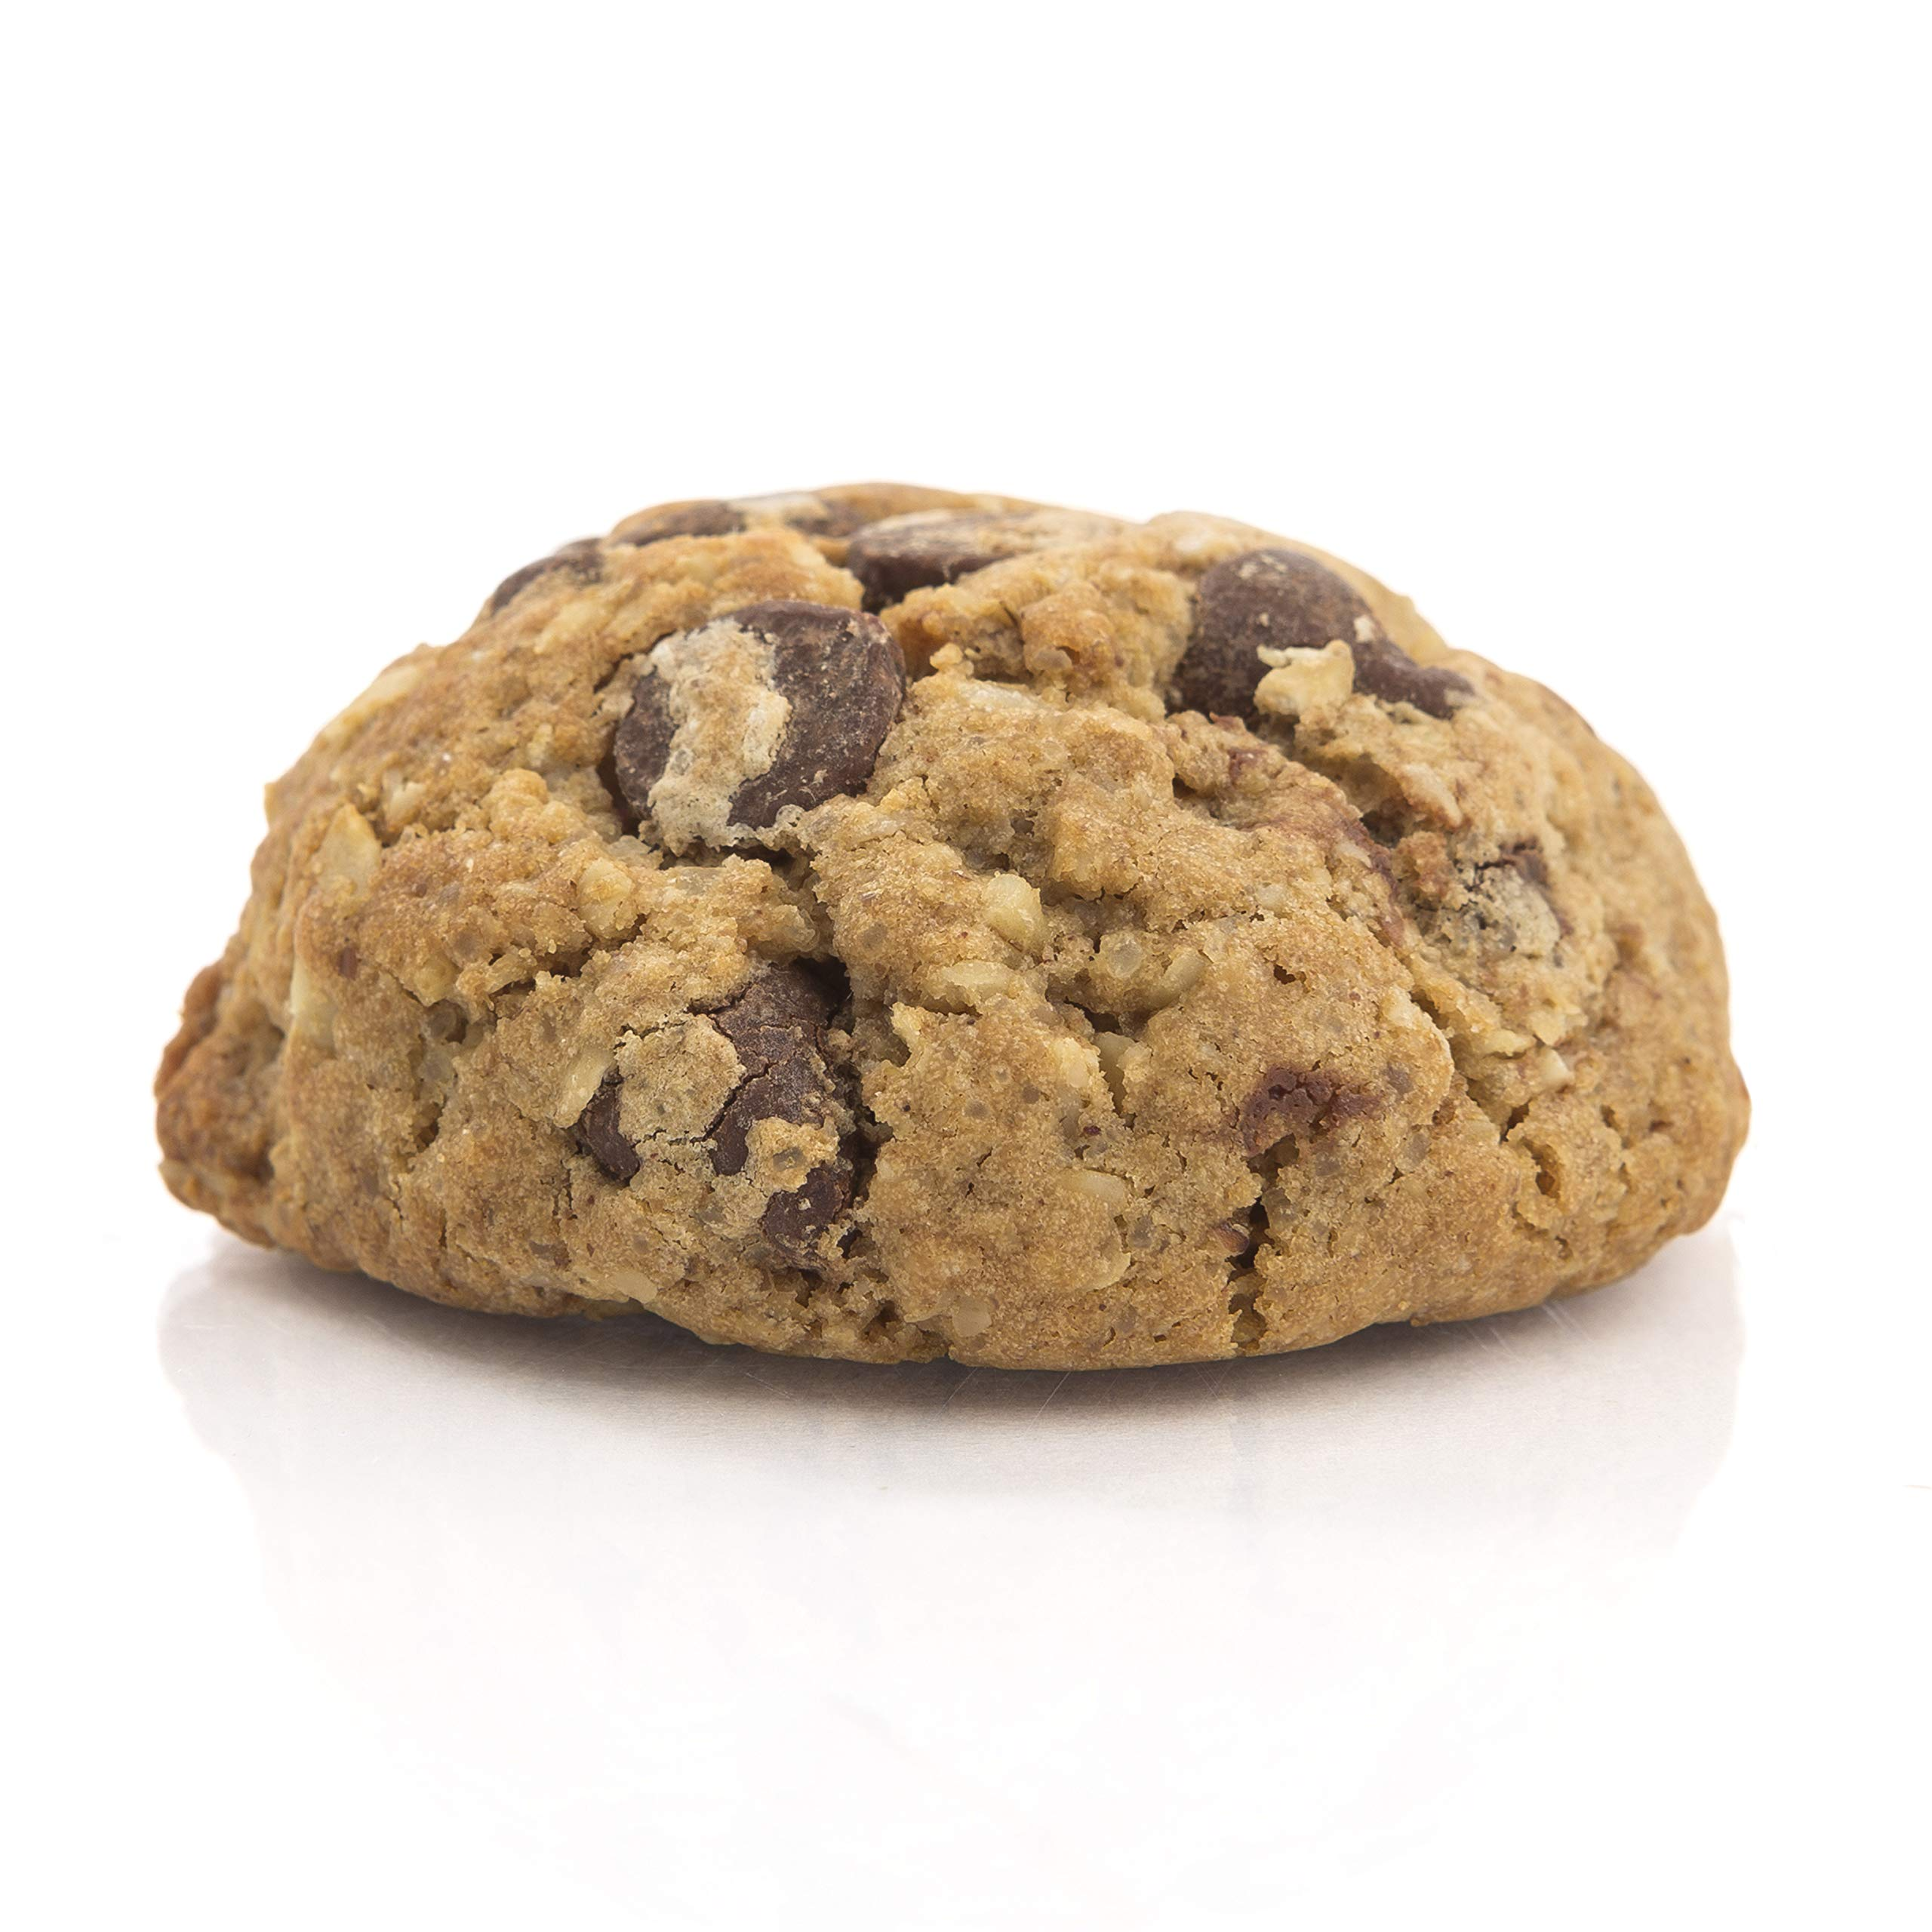 MilkBliss Dark Chocolate Chip Lactation Cookies for Breastfeeding, All Natural and GMO Free Lactation Boosting Ingredients! Oats, Flaxseed, Brewers Yeast. 12 Count.